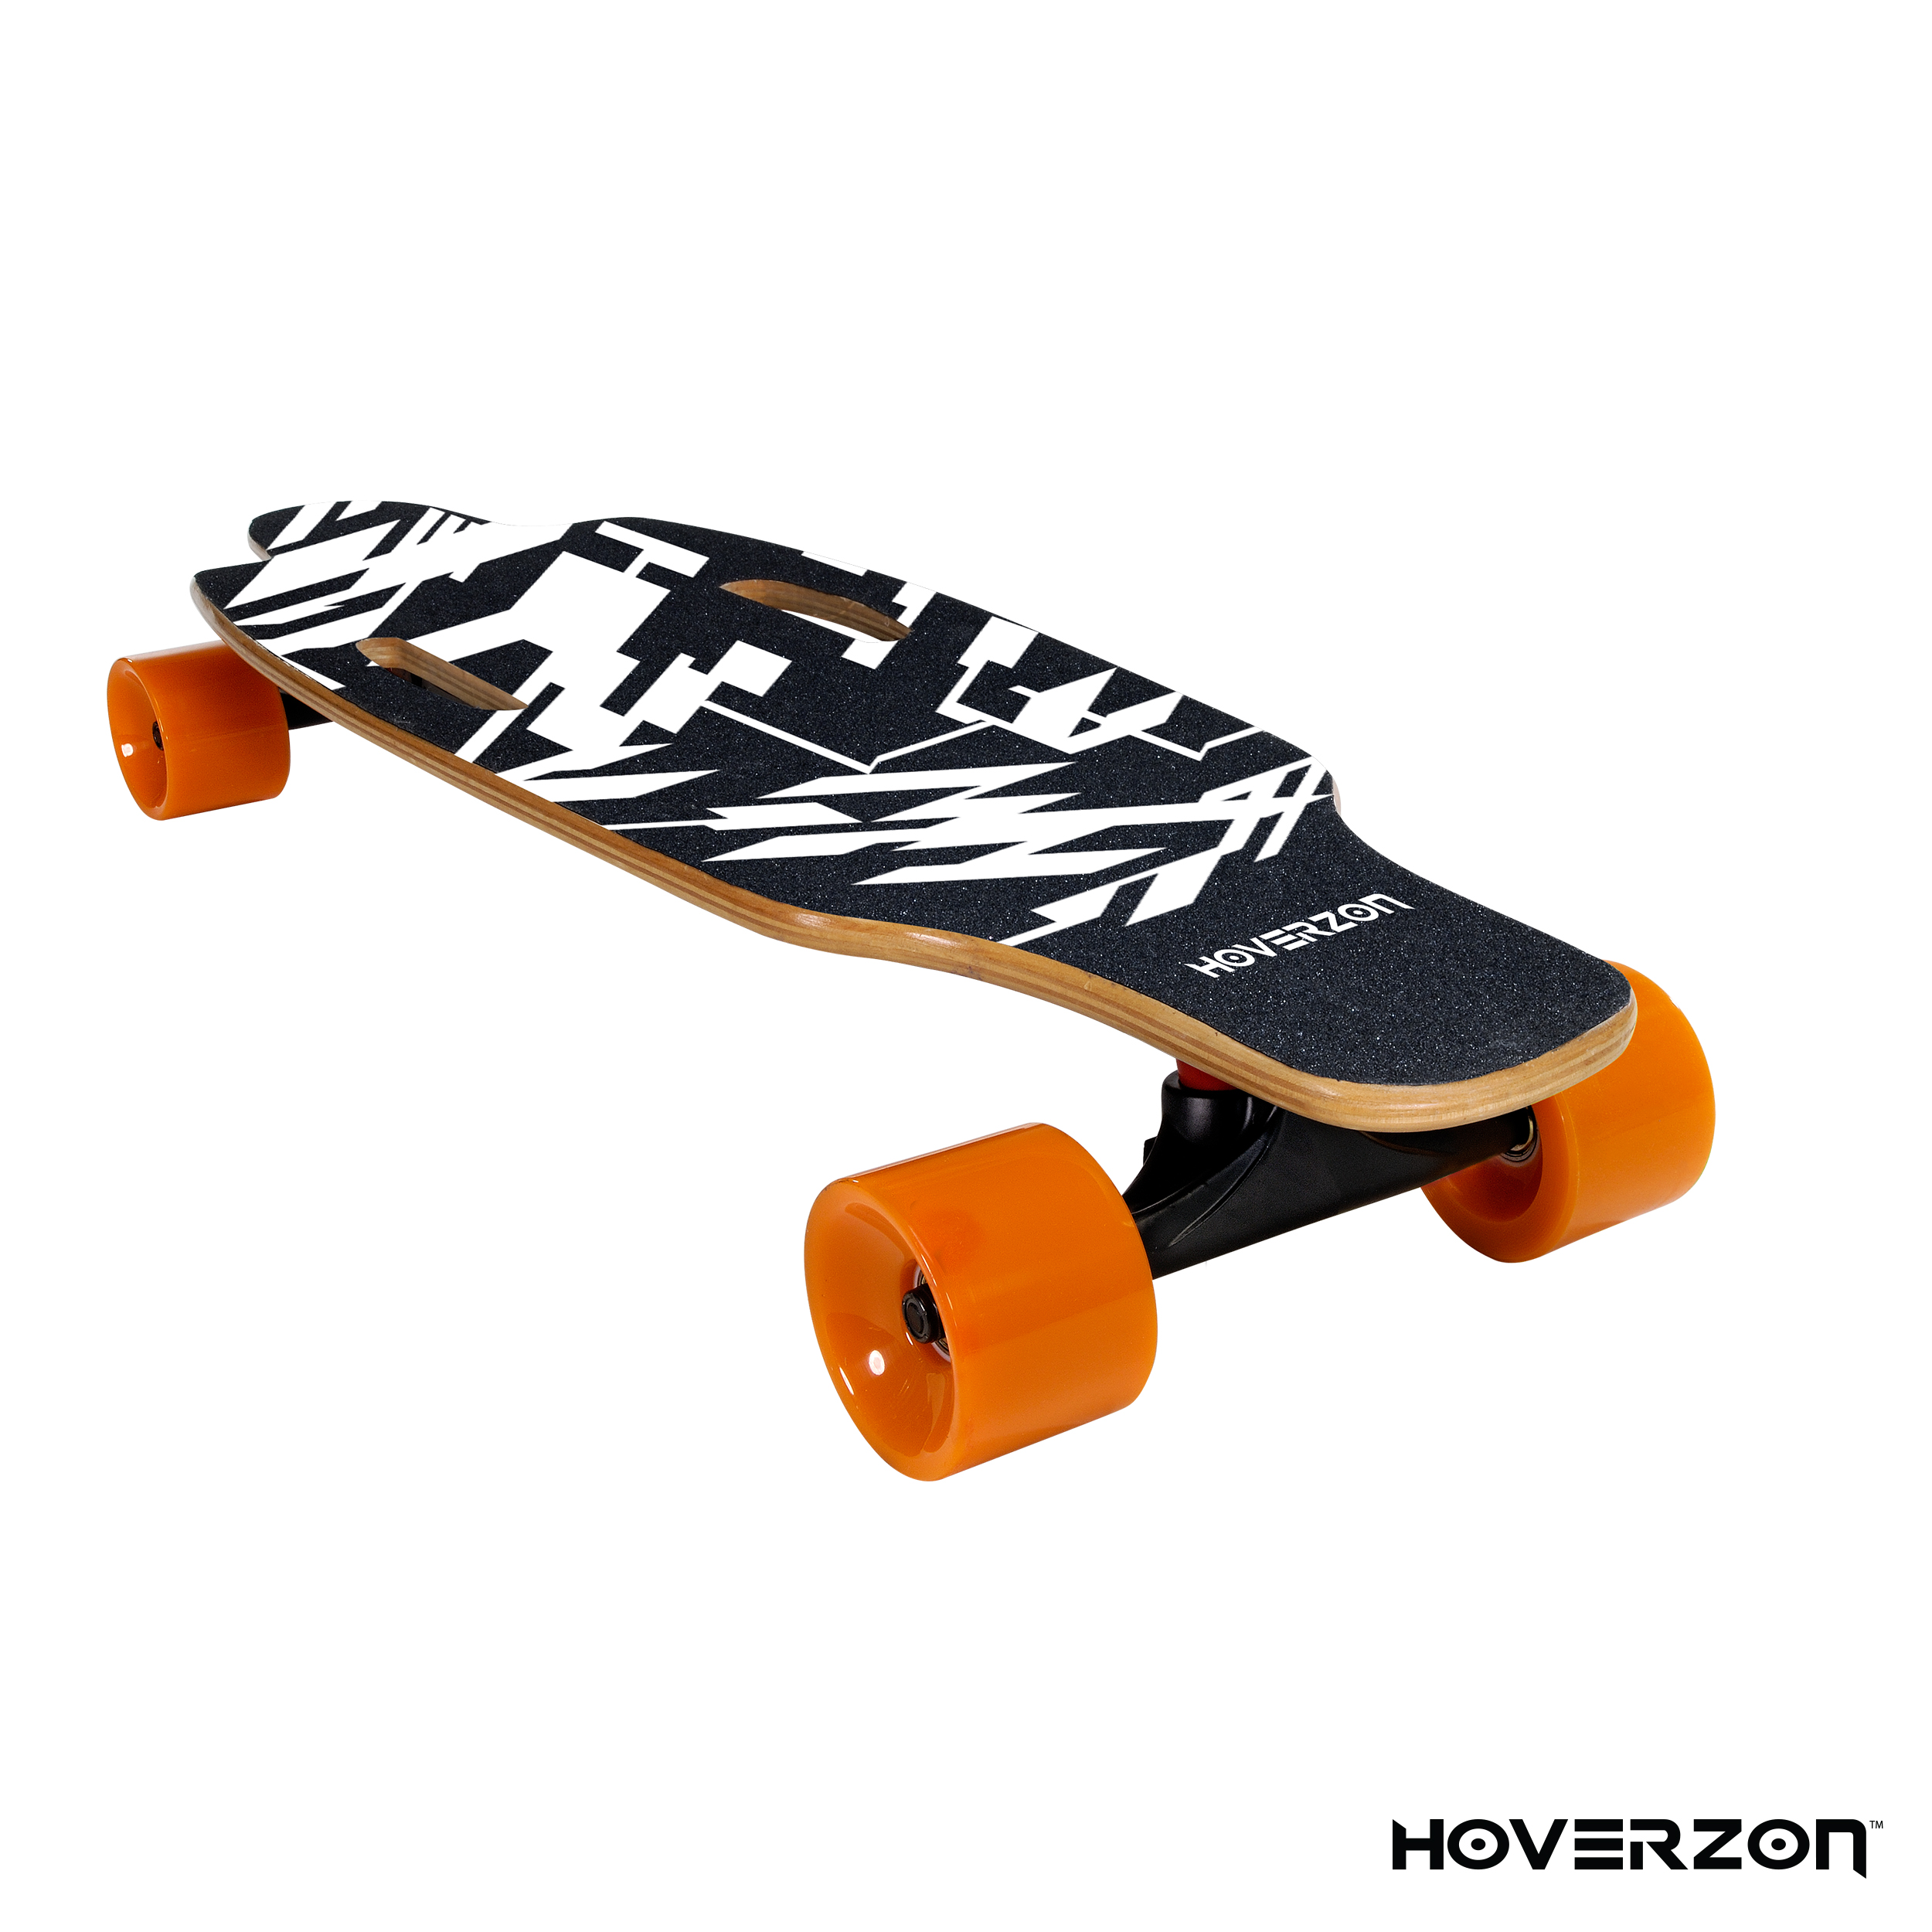 Hoverzon Hoverjet Electric Skateboard � Motorized Longboard with Wireless Remote by Hoverzon